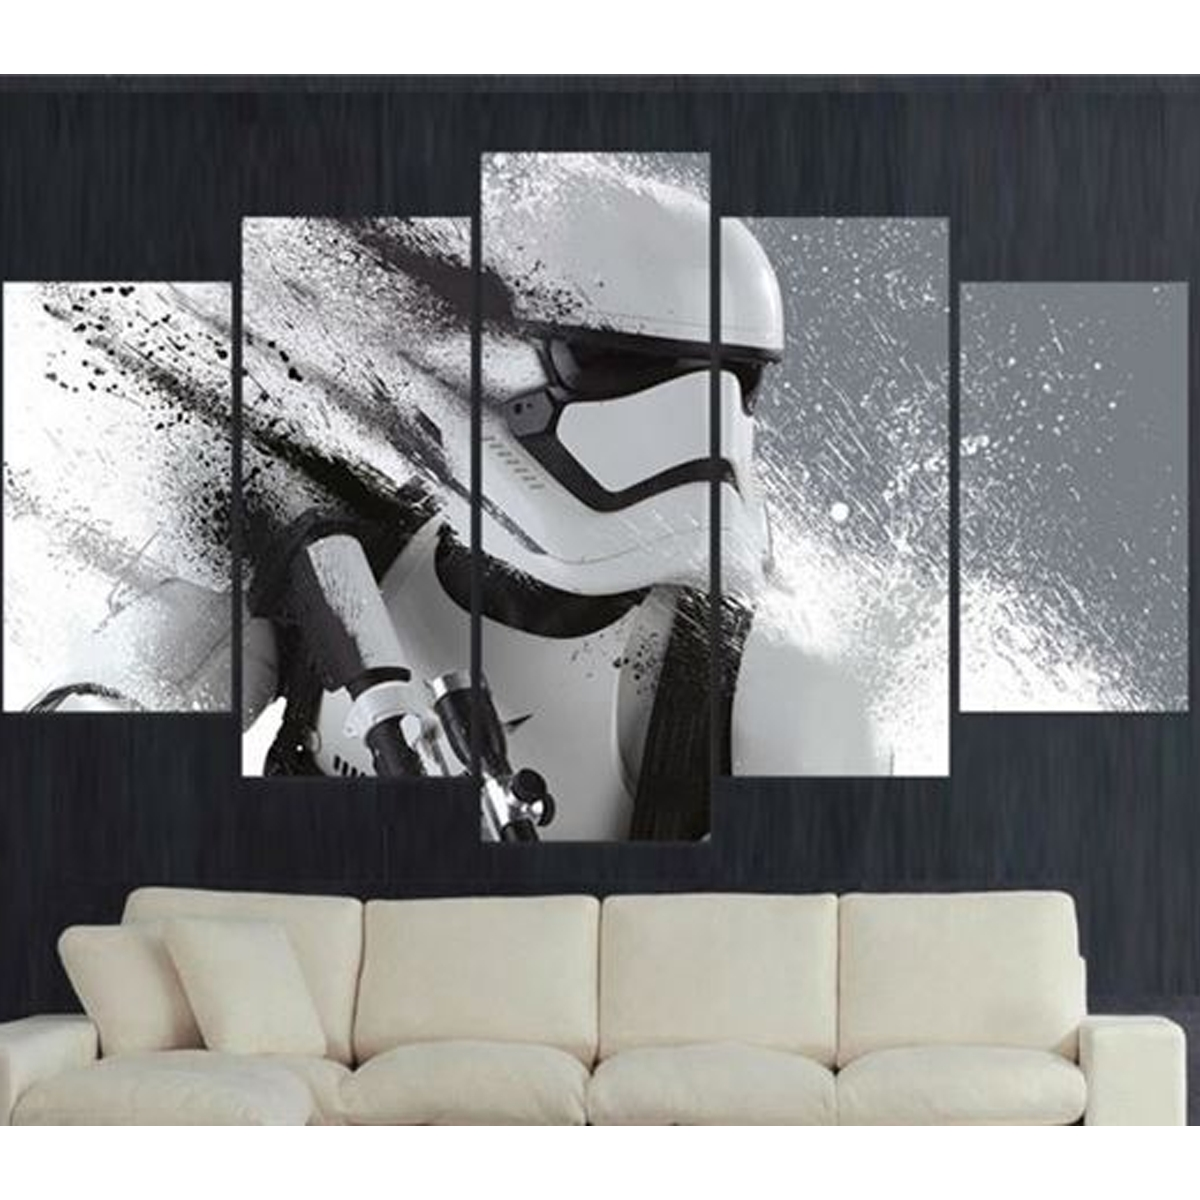 Stormtrooper 5 Piece Canvas Limited Edition Oneshopexpress Inside Most Recent Limited Edition Wall Art (View 13 of 20)